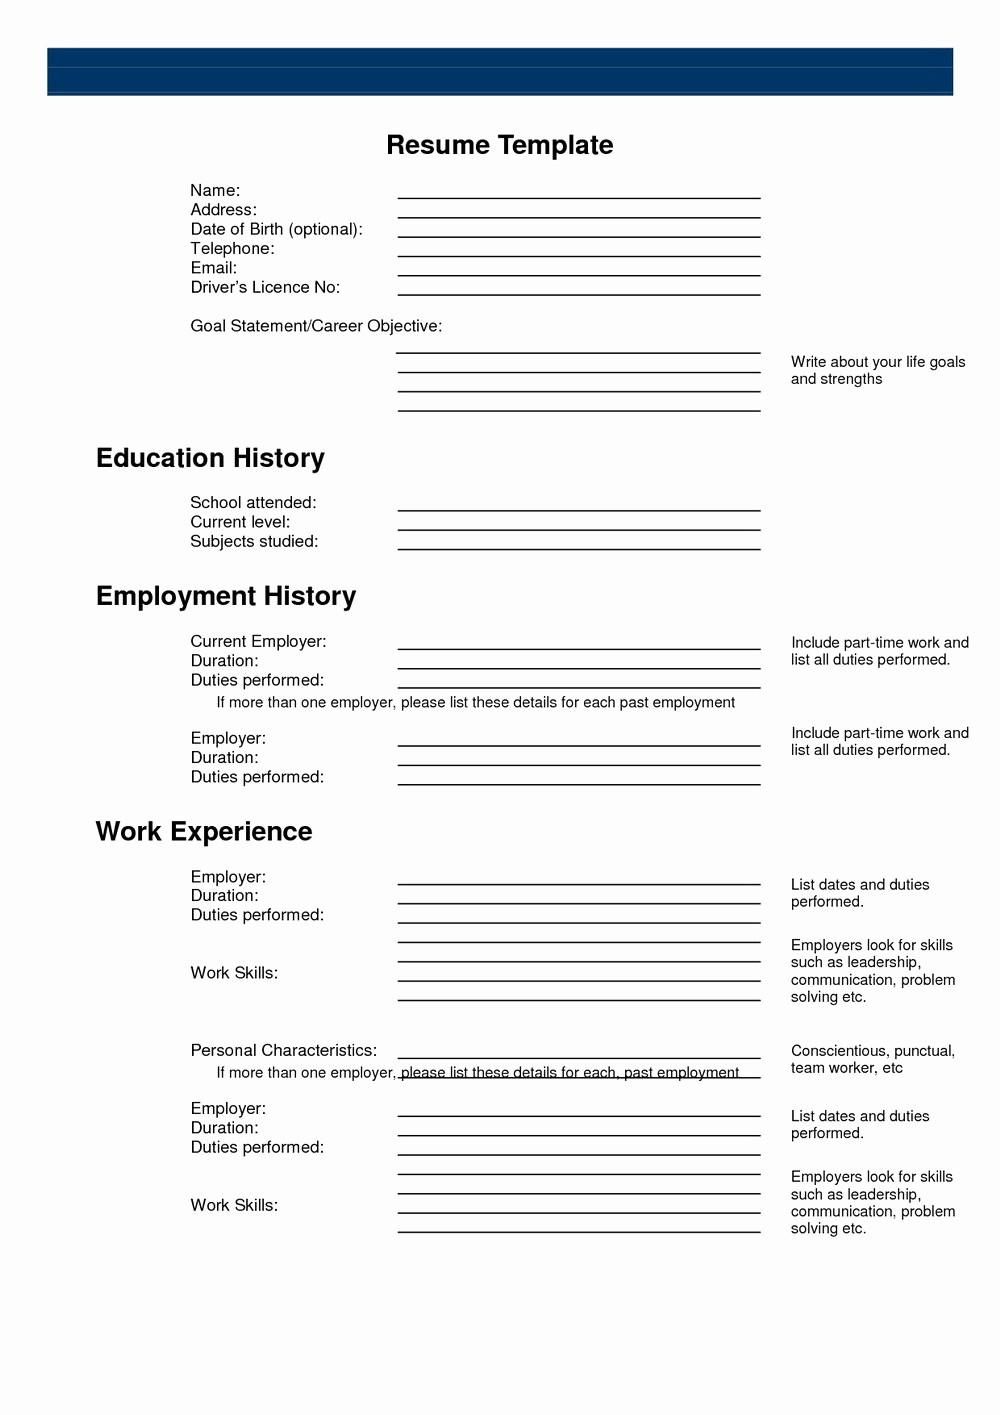 Form Of Resume for Job Unique Blank Resume form Pdf Resumes 2442